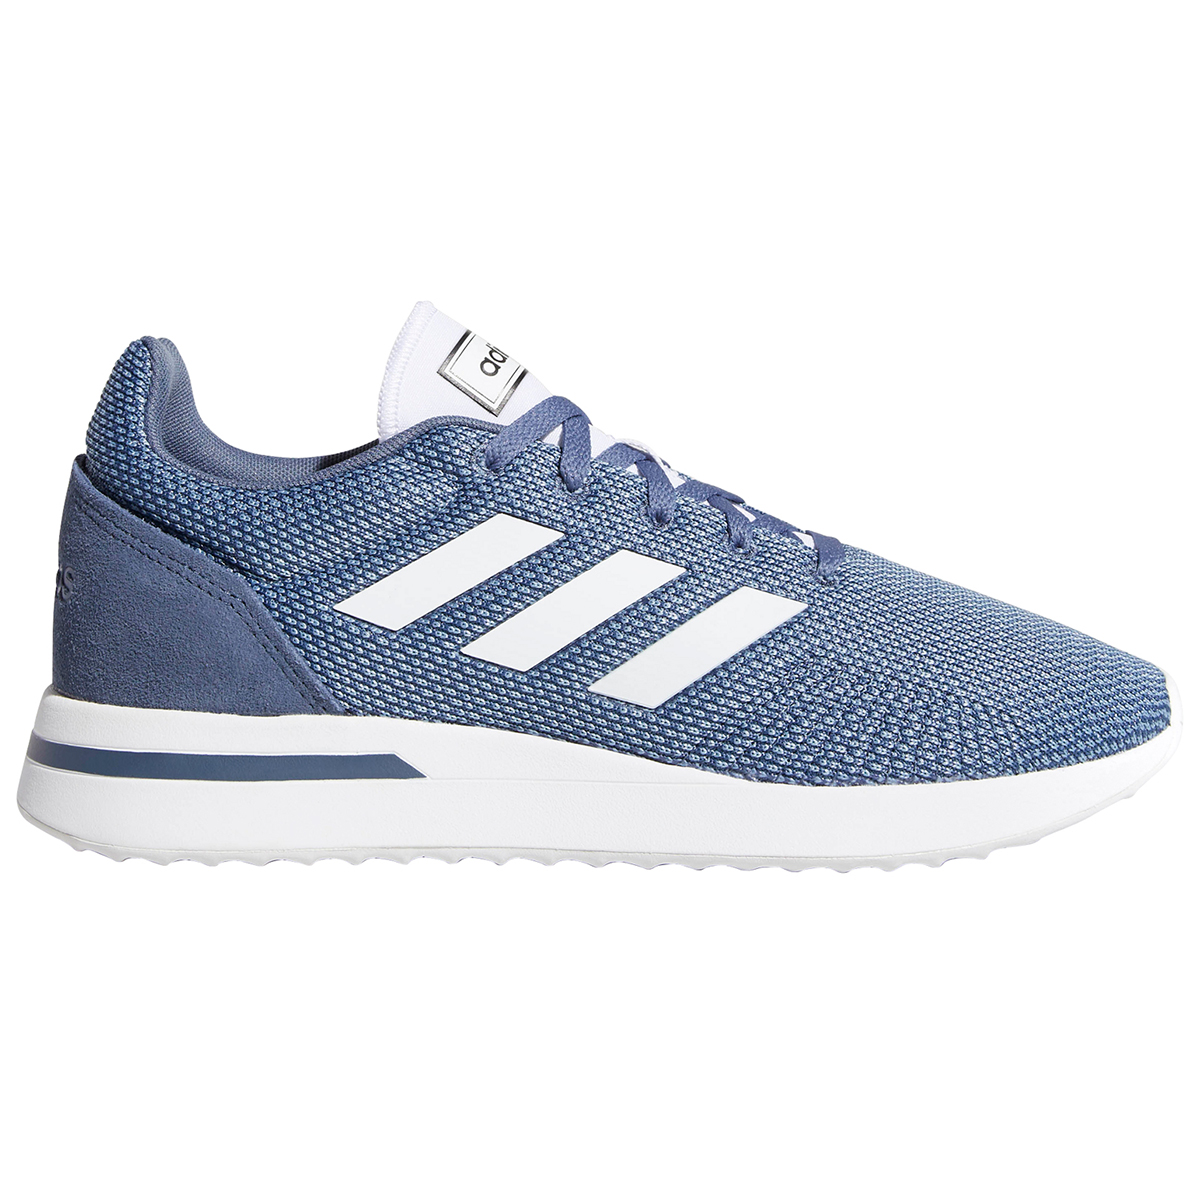 Adidas Men's Run 70S Running Shoes - Blue, 12